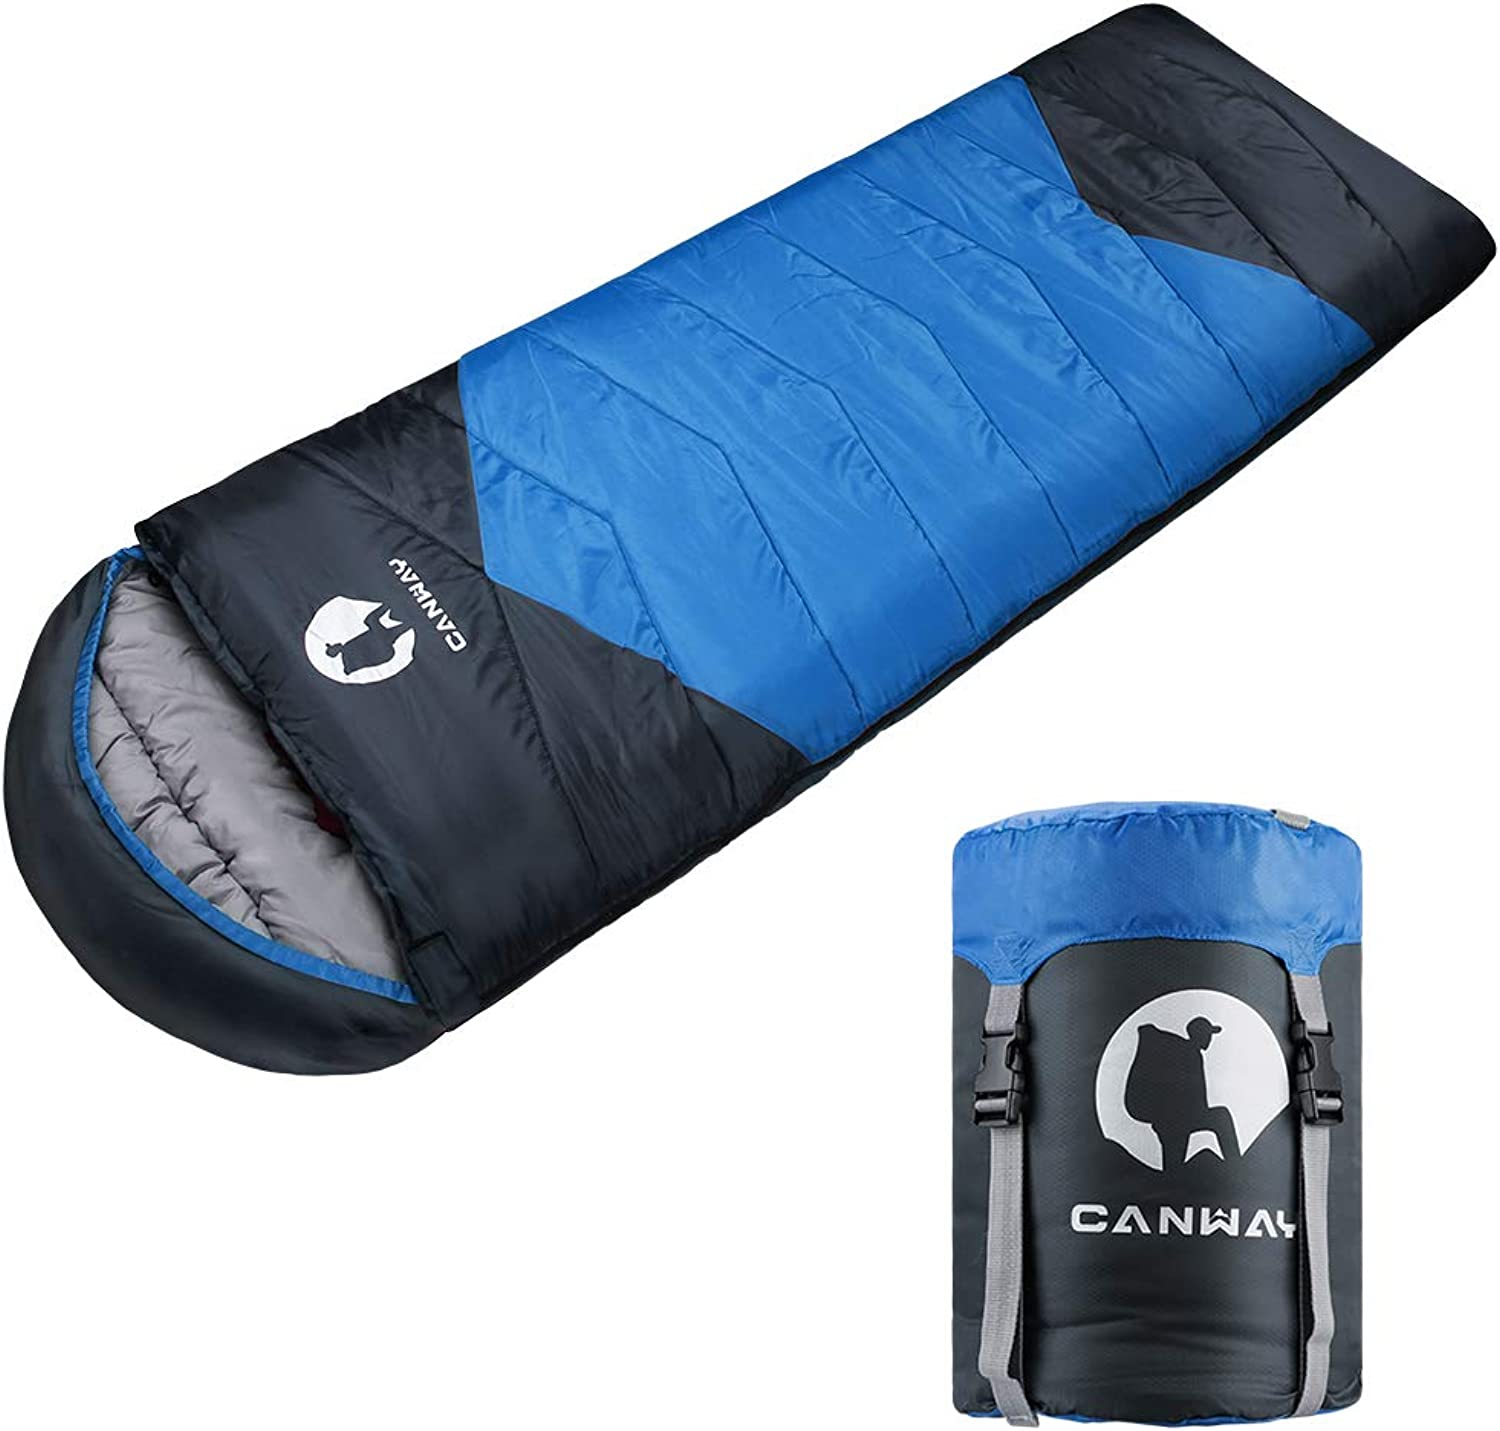 CANWAY Sleeping Bag with Compression Sack Lightweight and Waterproof for Warm & Cold Weather Comfort for 4 Seasons Camping Traveling Hiking Backpacking Adults & Kids